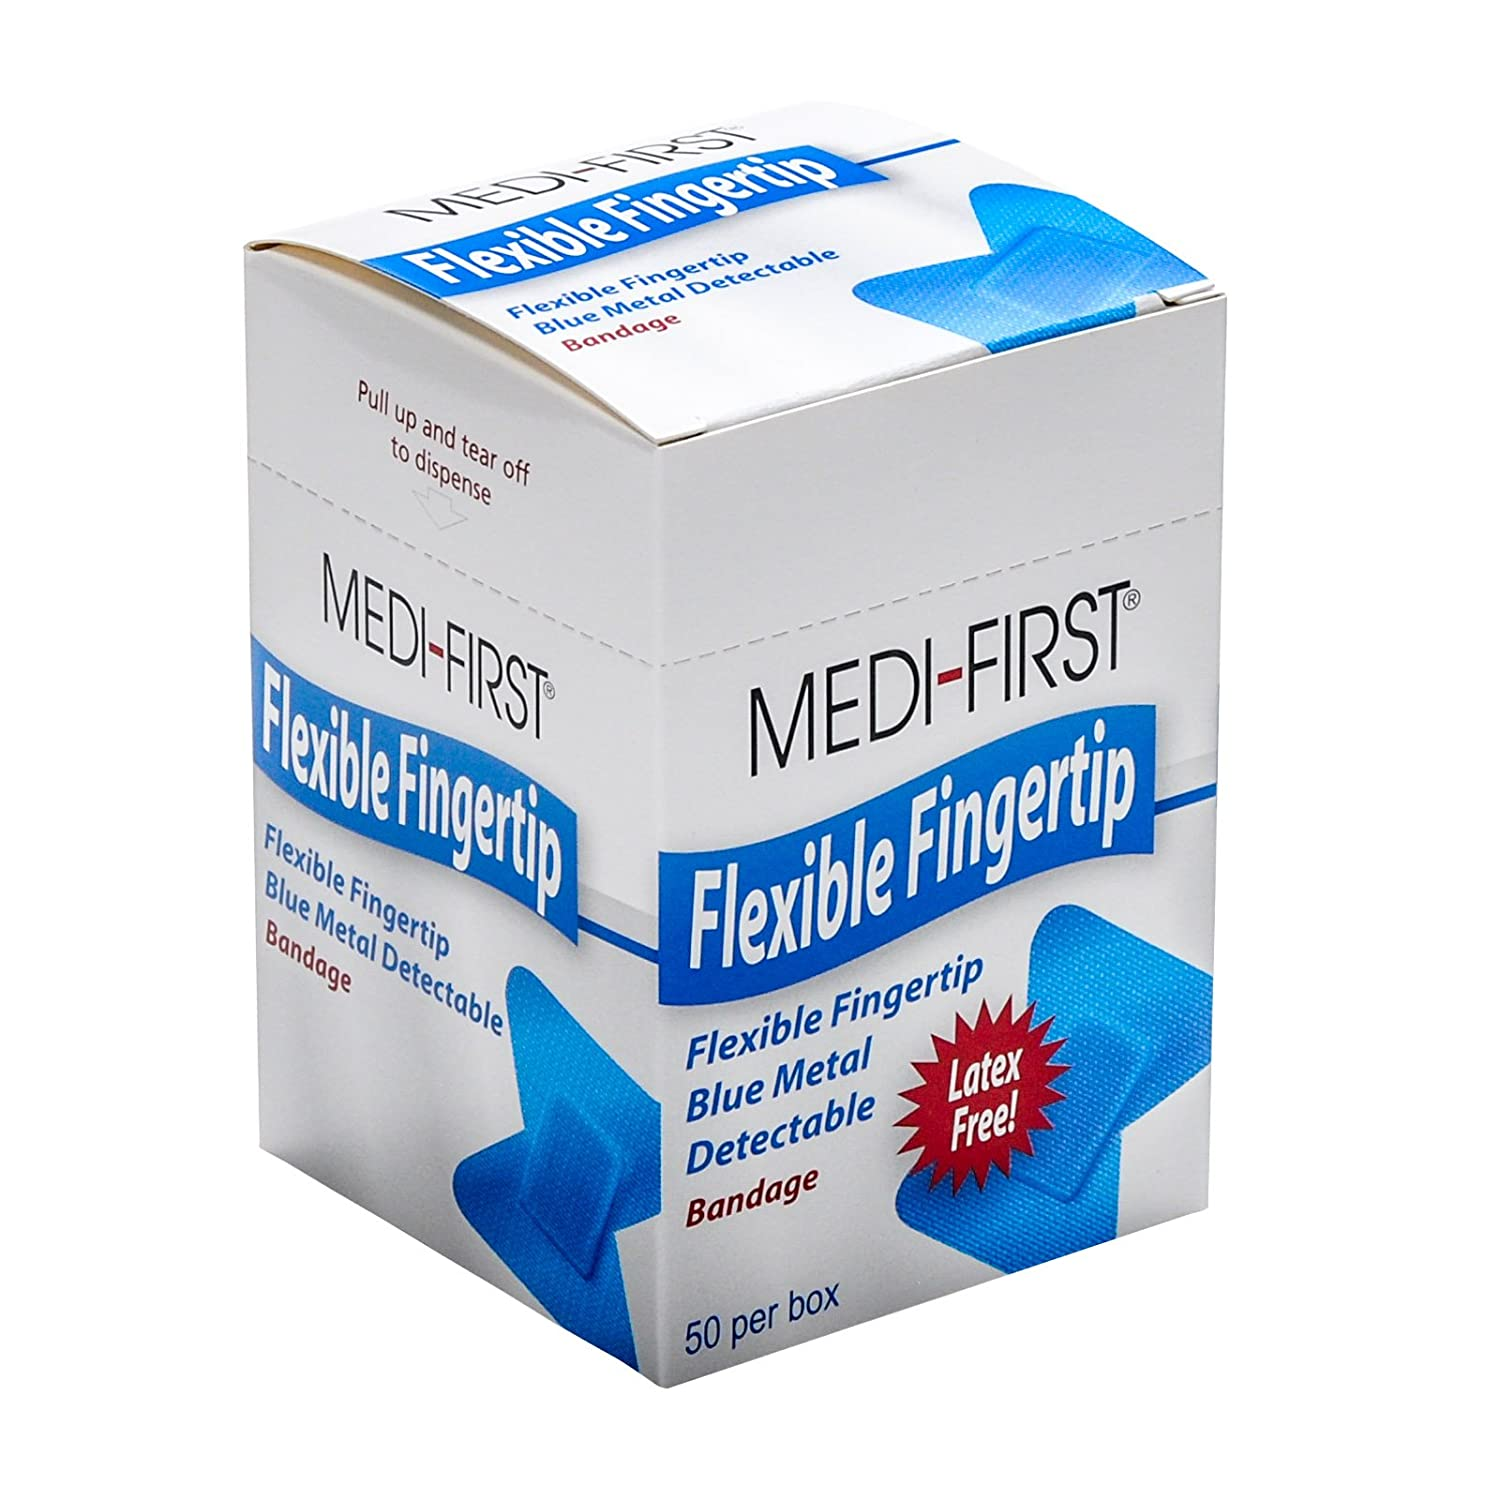 Medique Products 66050 Metal Detectable Bandages, Woven Fingertip, Blue, 50-Per Box